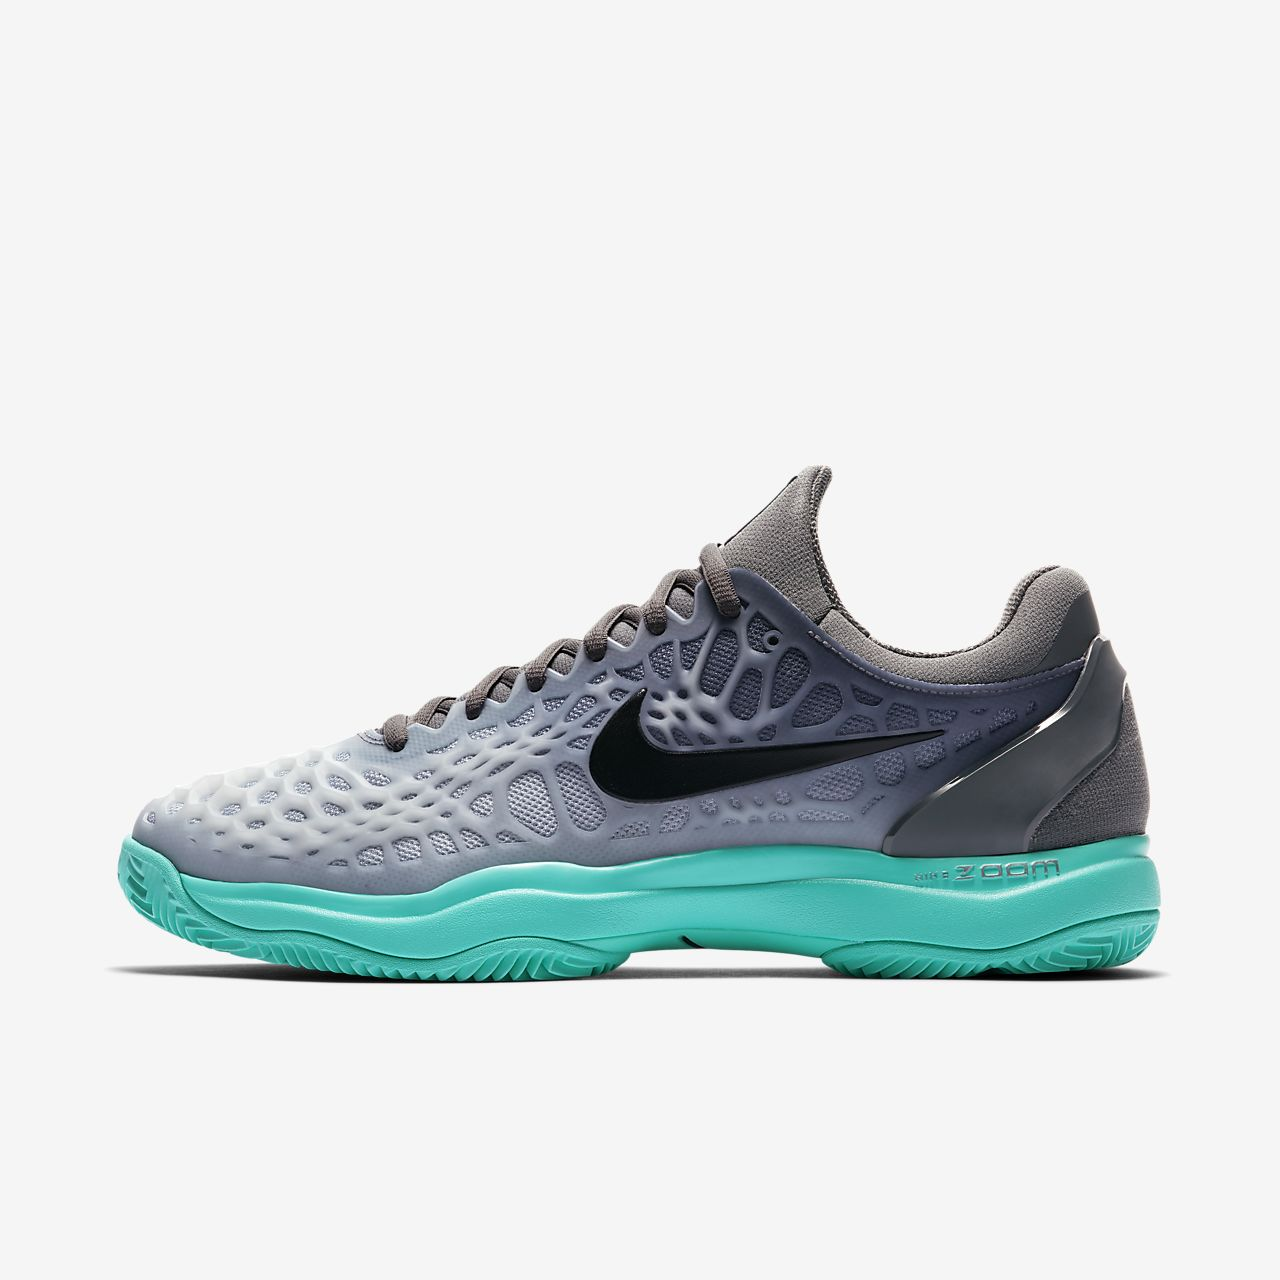 Nike Zoom Cage 3 Clay Mens Tennis Shoe